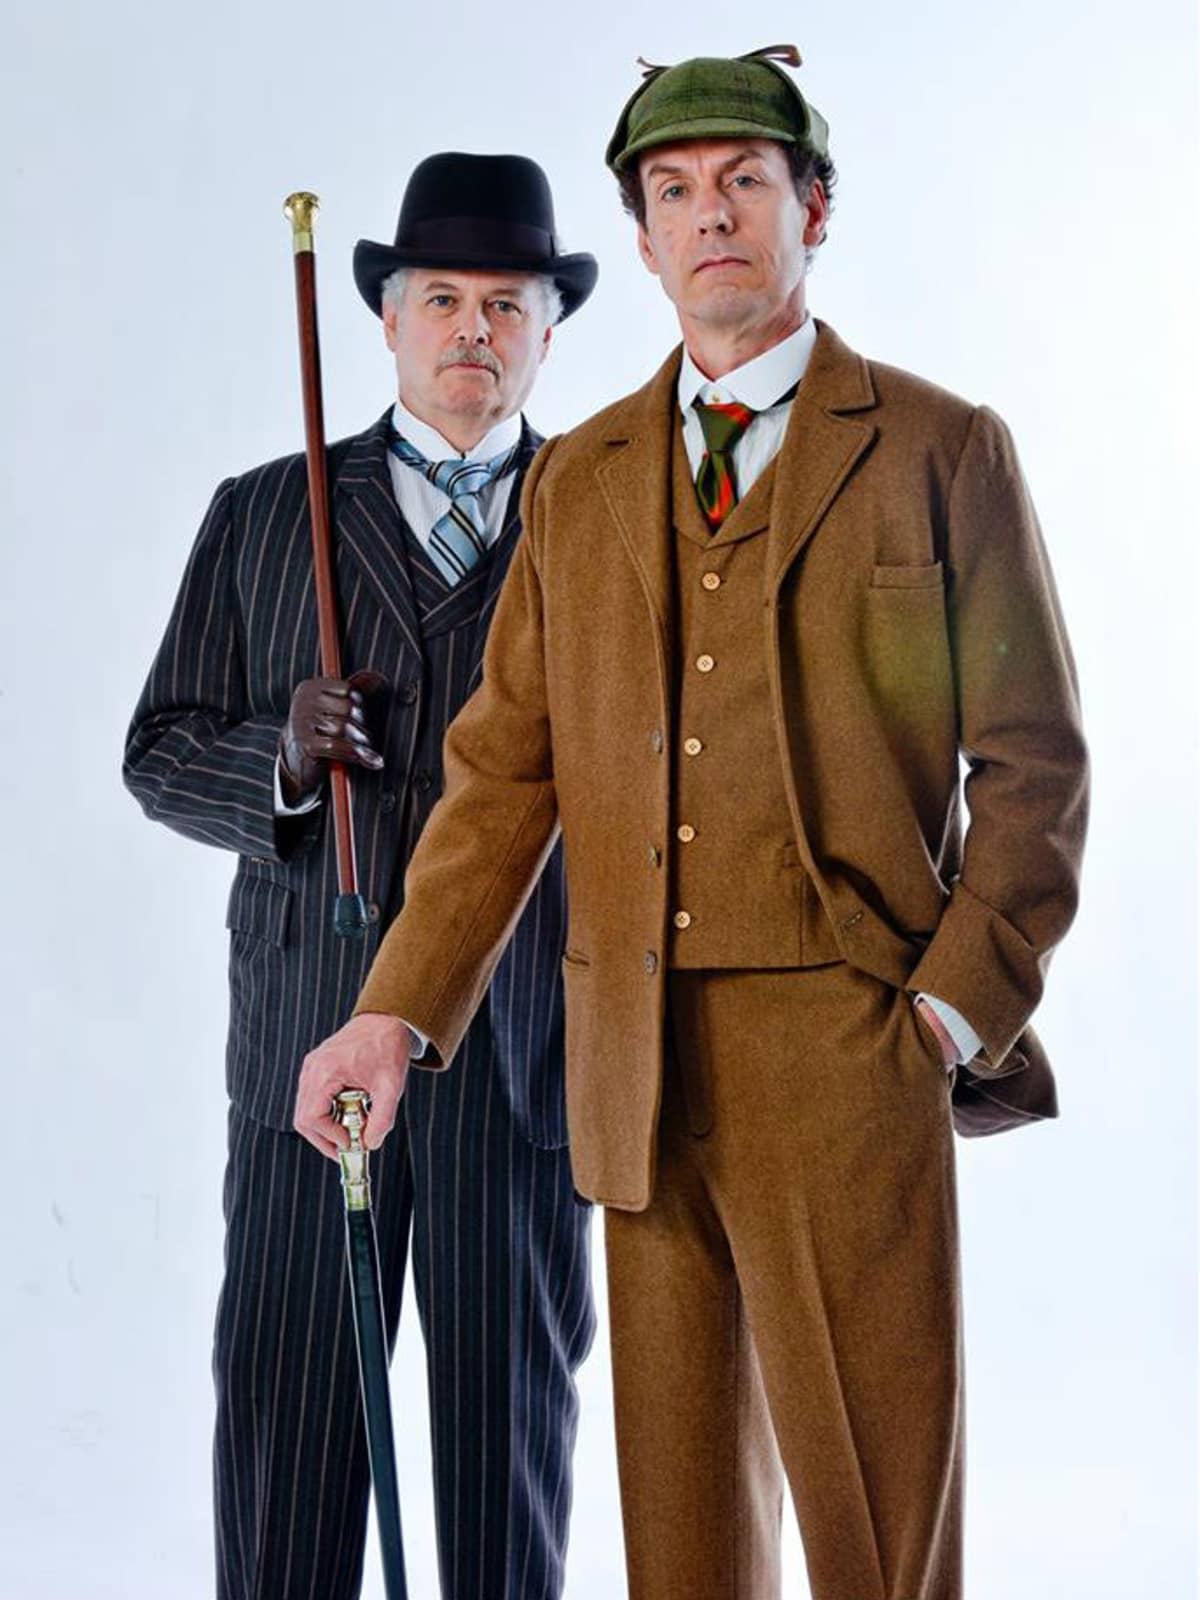 Dallas Theater Center presents Sherlock Holmes: The Final Adventure